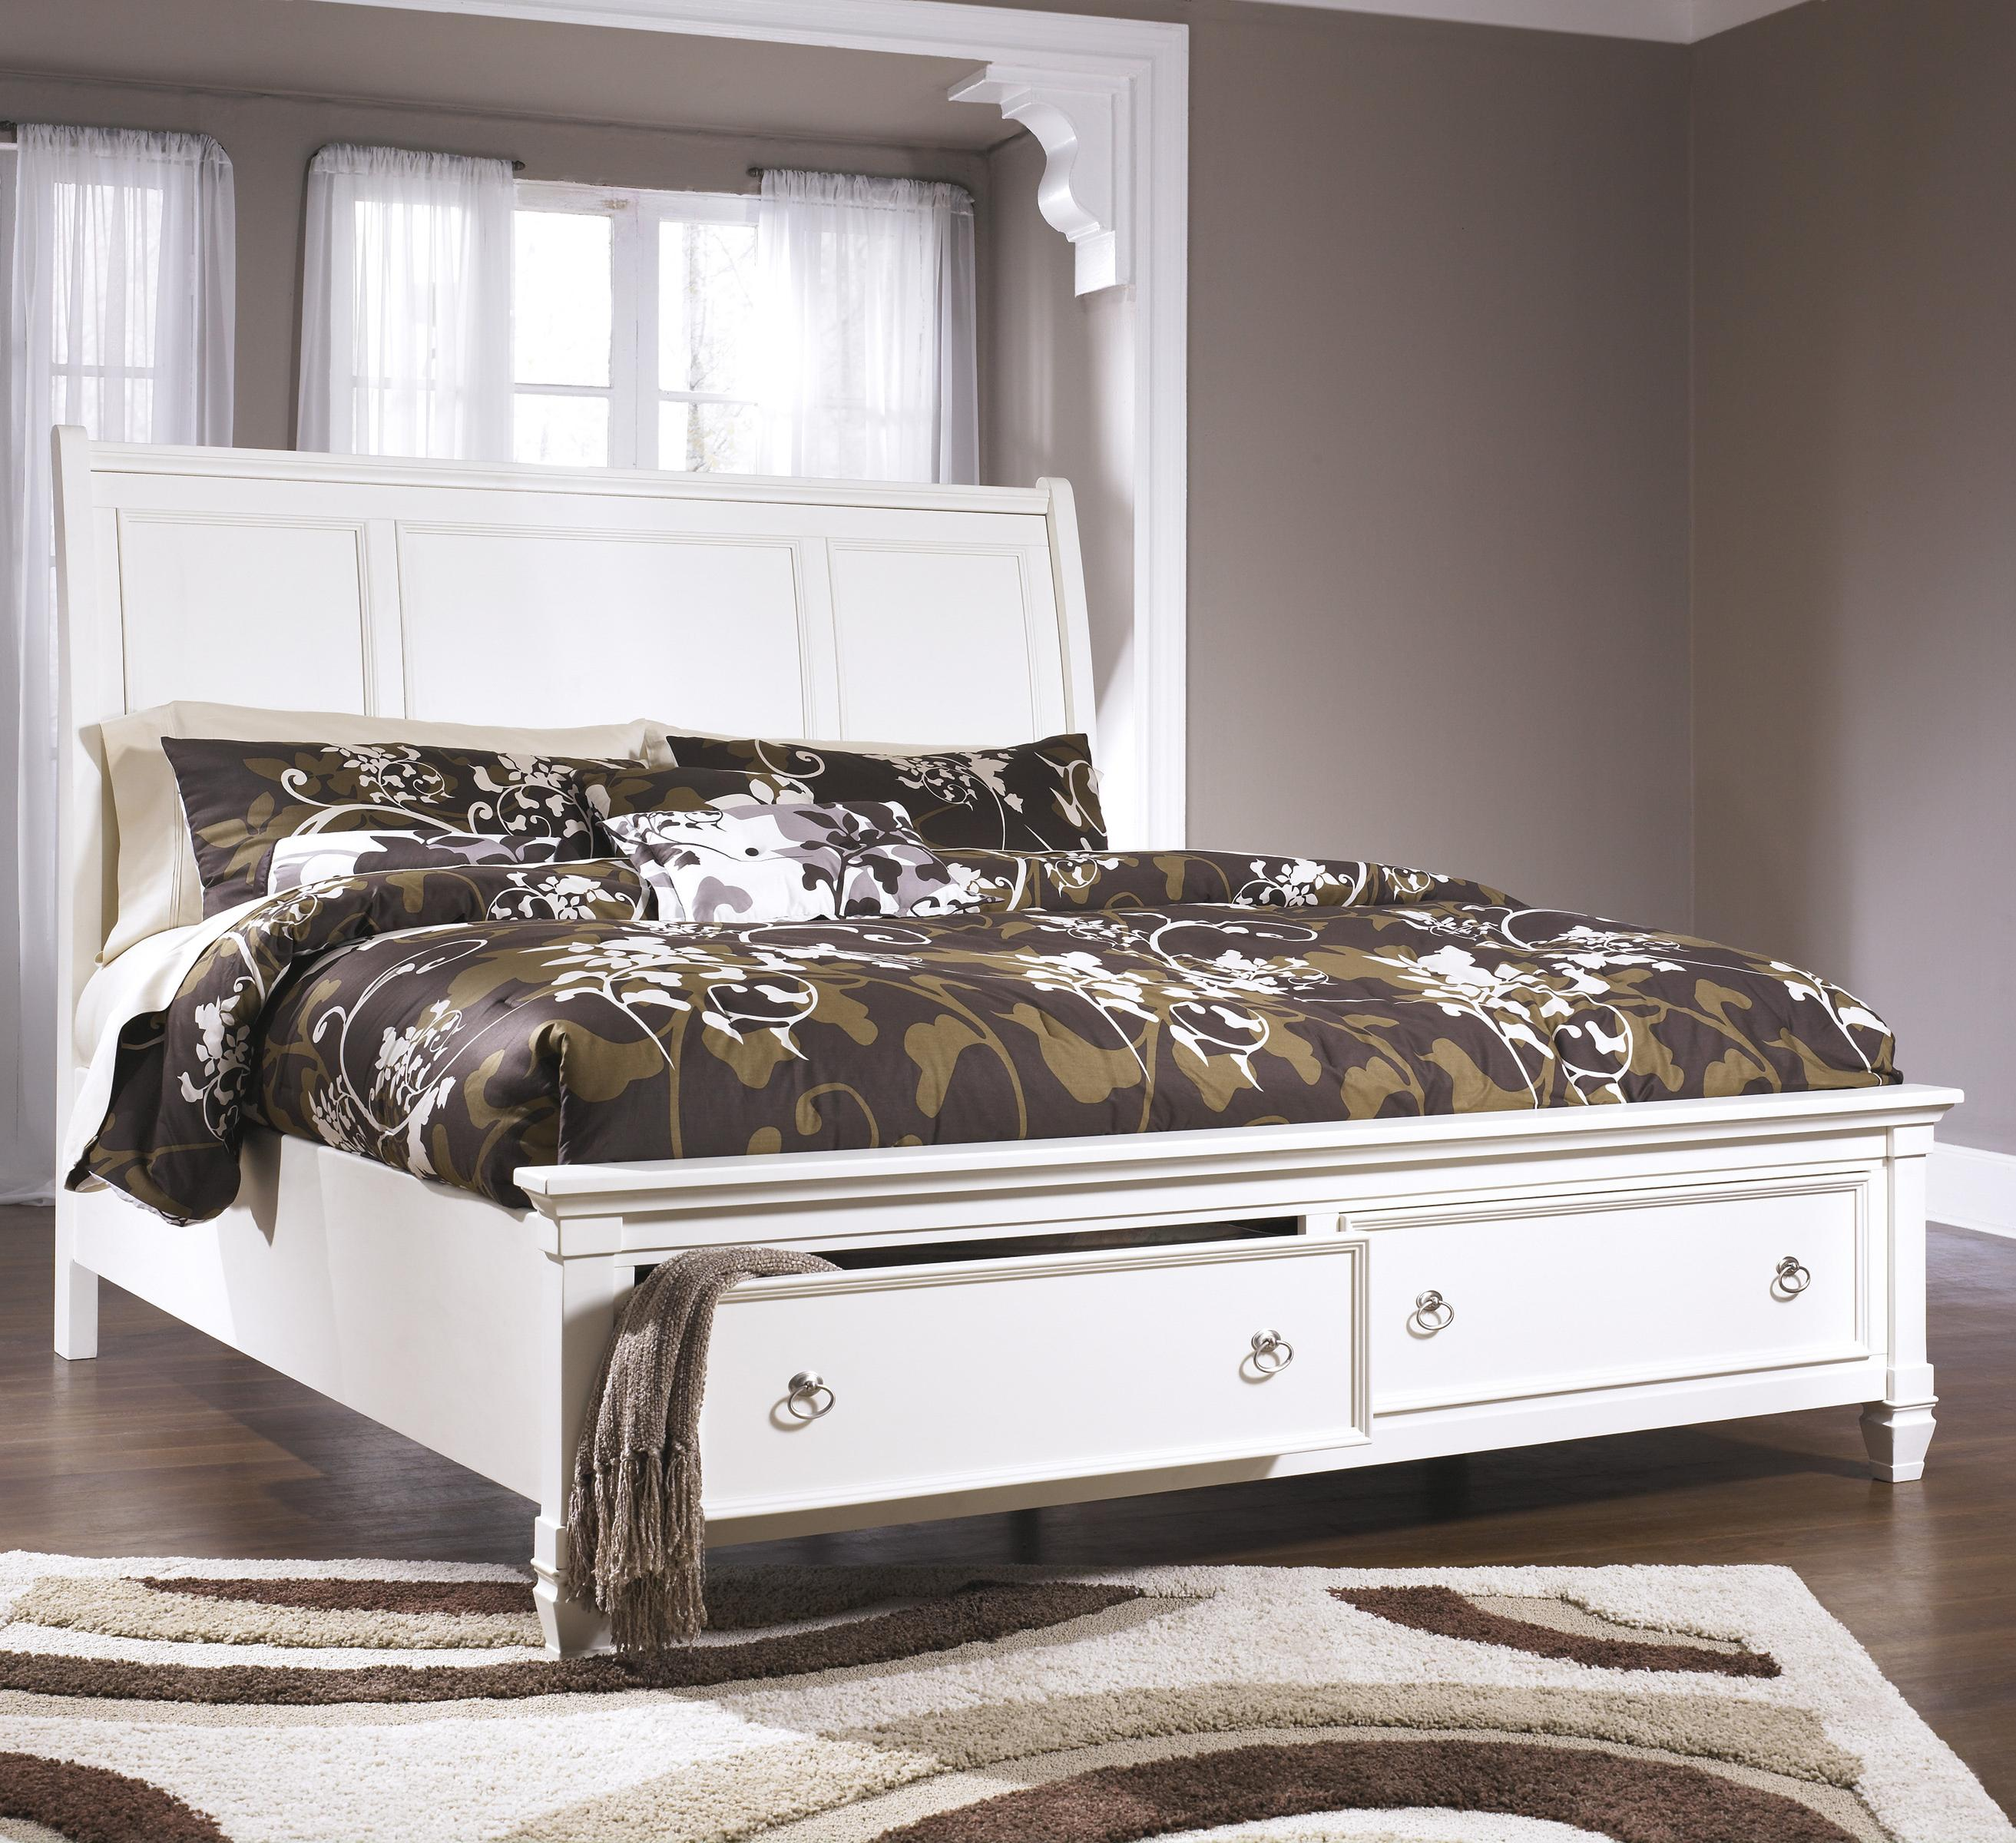 Millennium prentice queen sleigh bed with storage Ashley furniture millennium bedroom set